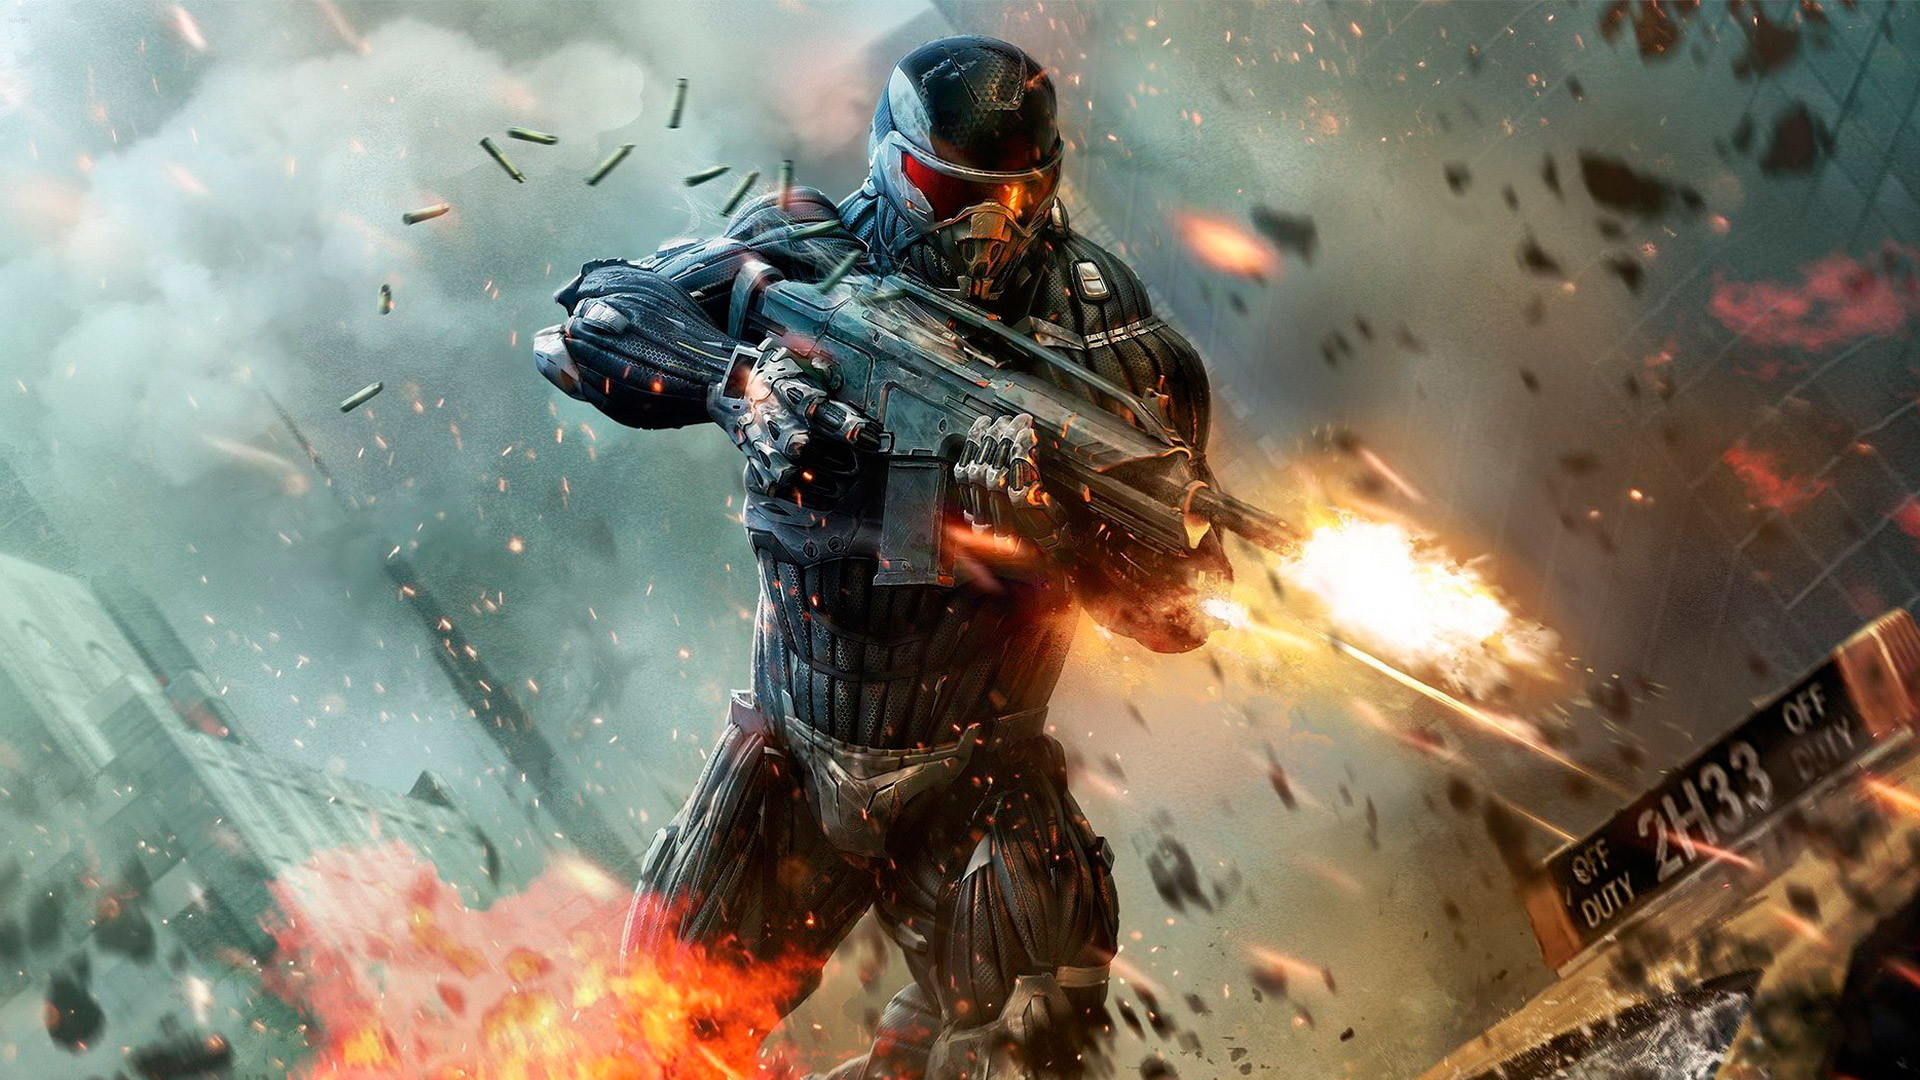 1920x1080 Crysis 2 1080p Wallpaper Crysis 2 720p Wallpaper